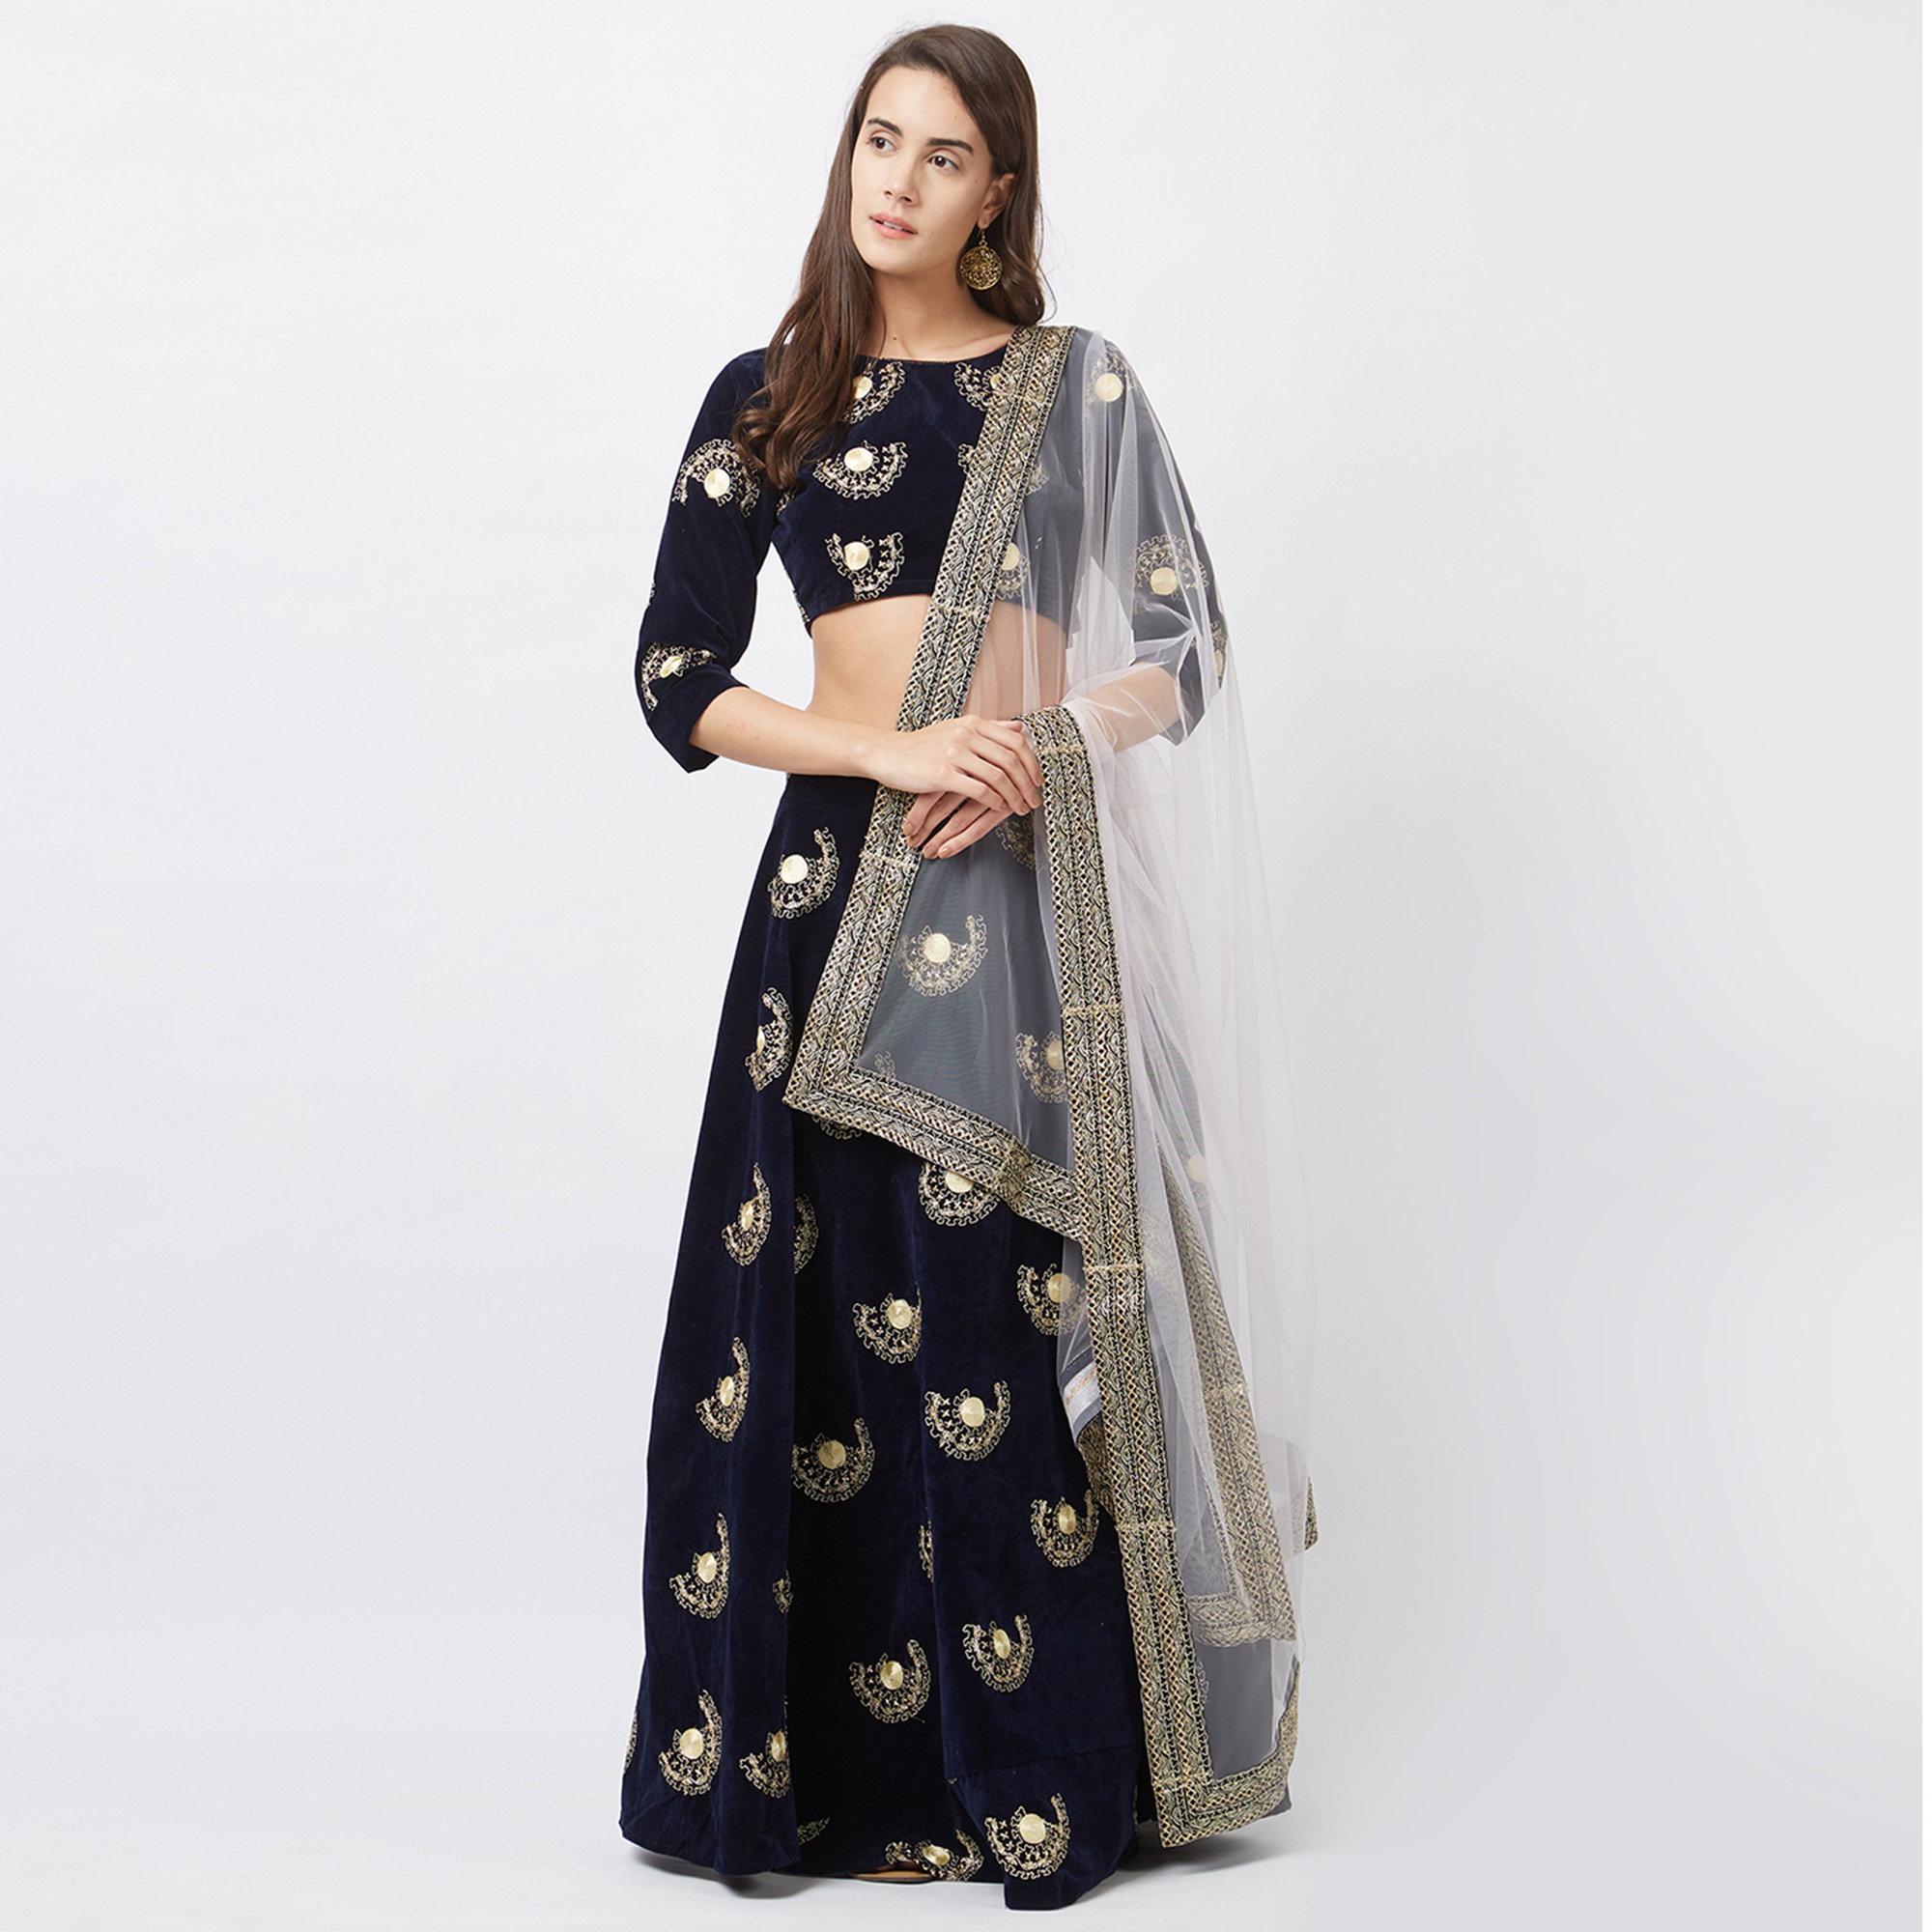 42892bc96b Impressive Navy Blue Colored Designer Embroidered Tapeta Velvet Lehenga  Choli